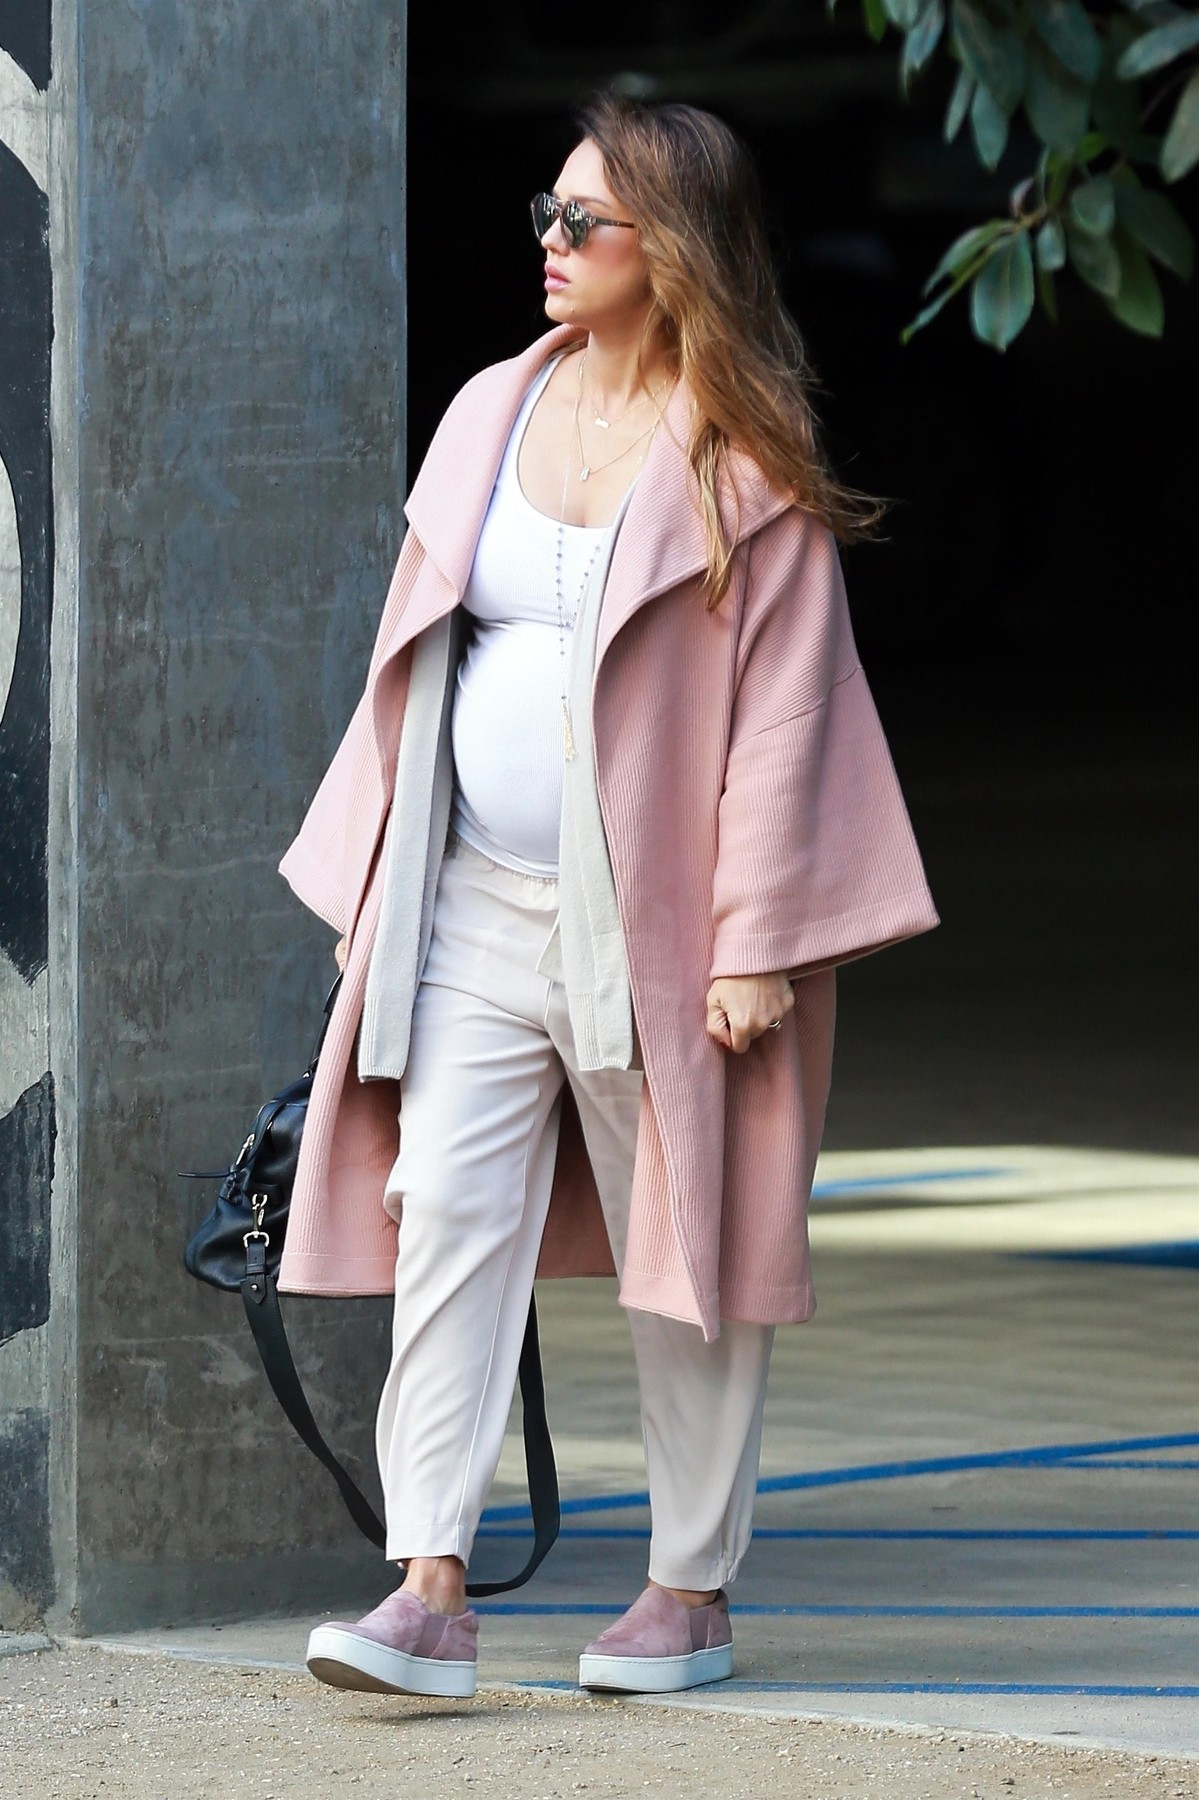 Los Angeles, CA  - *EXCLUSIVE*  - A very pregnant Jessica Alba shows off her gigantic baby bump while heading to a business meeting in Los Angeles. Jessica is currently expecting her third child with husband Cash Warren.  Pictured: Jessica Alba  BACKGRID USA 7 NOVEMBER 2017,Image: 354843538, License: Rights-managed, Restrictions: , Model Release: no, Credit line: Stoianov / BACKGRID / Backgrid USA / Profimedia